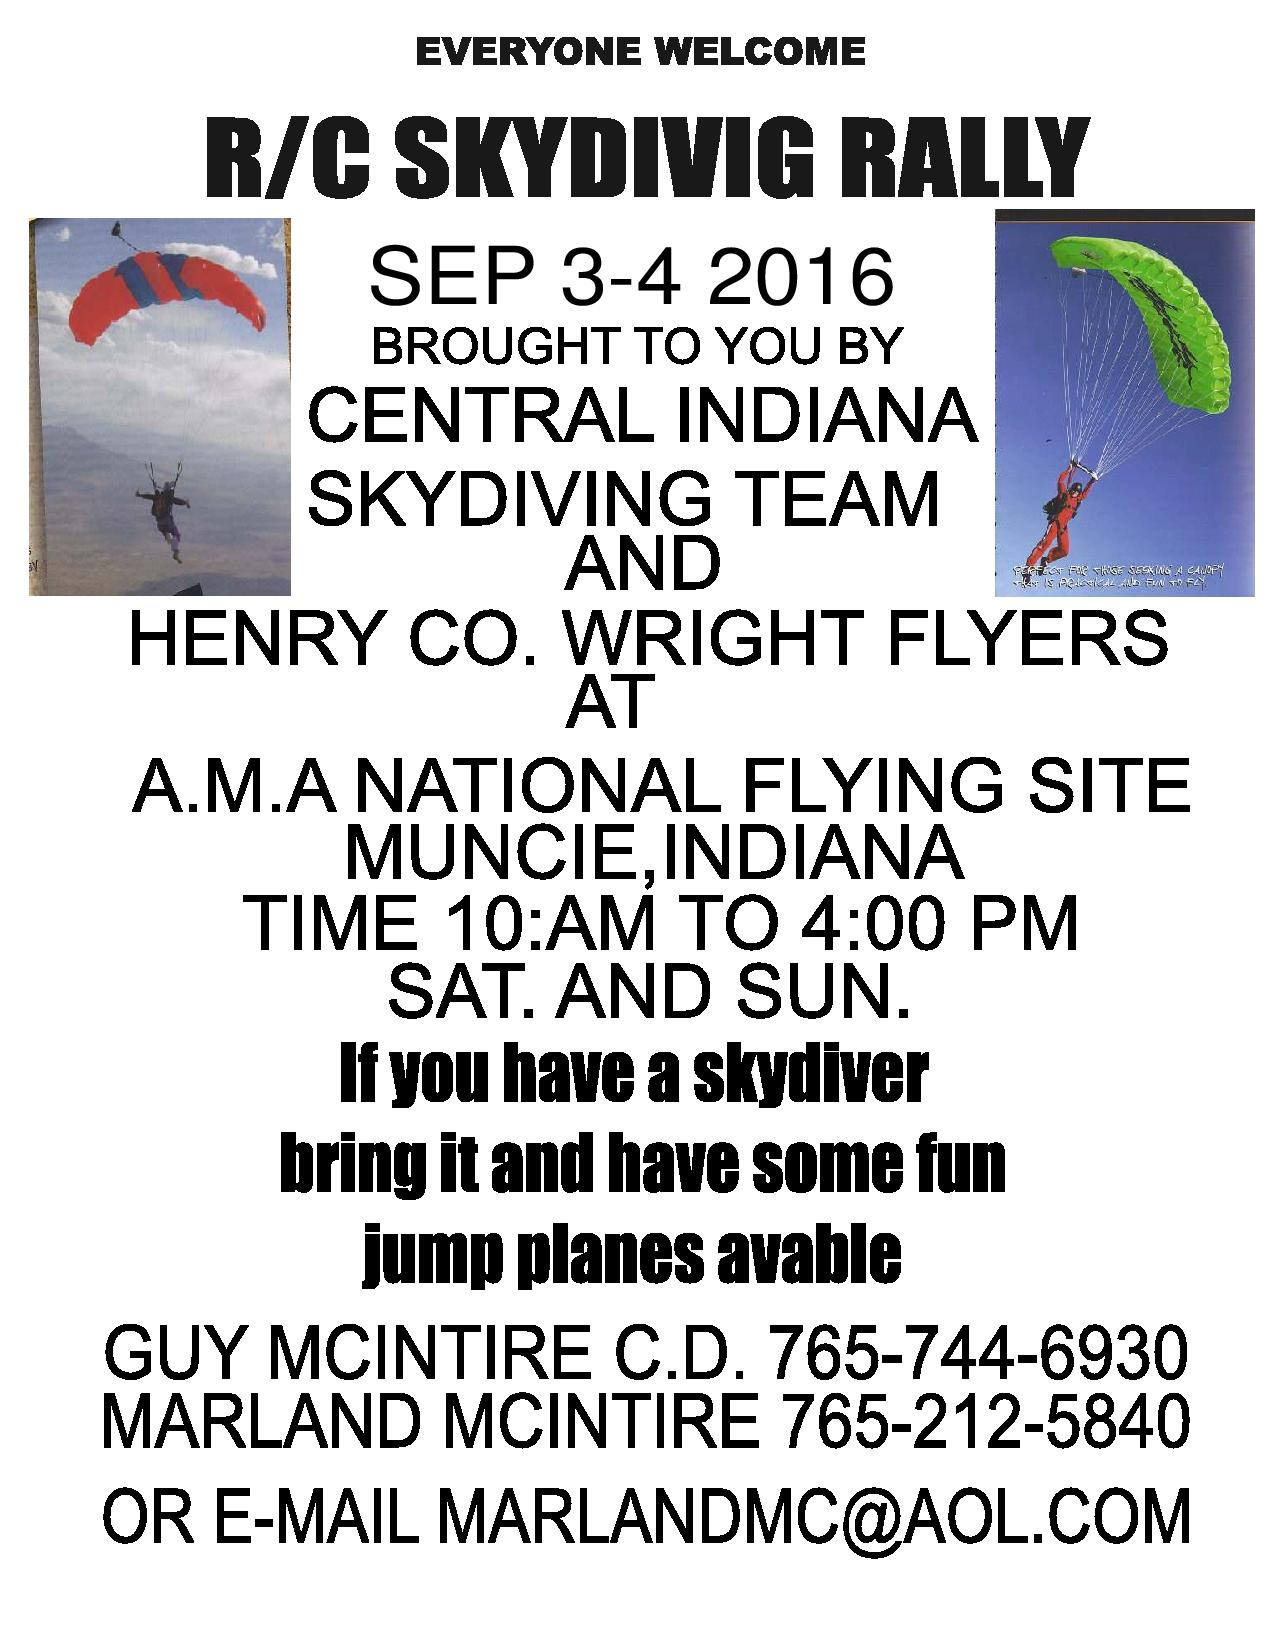 Click image for larger version  Name:fyler newskydiving16_1-page-001.jpg Views:186 Size:276.6 KB ID:2157985